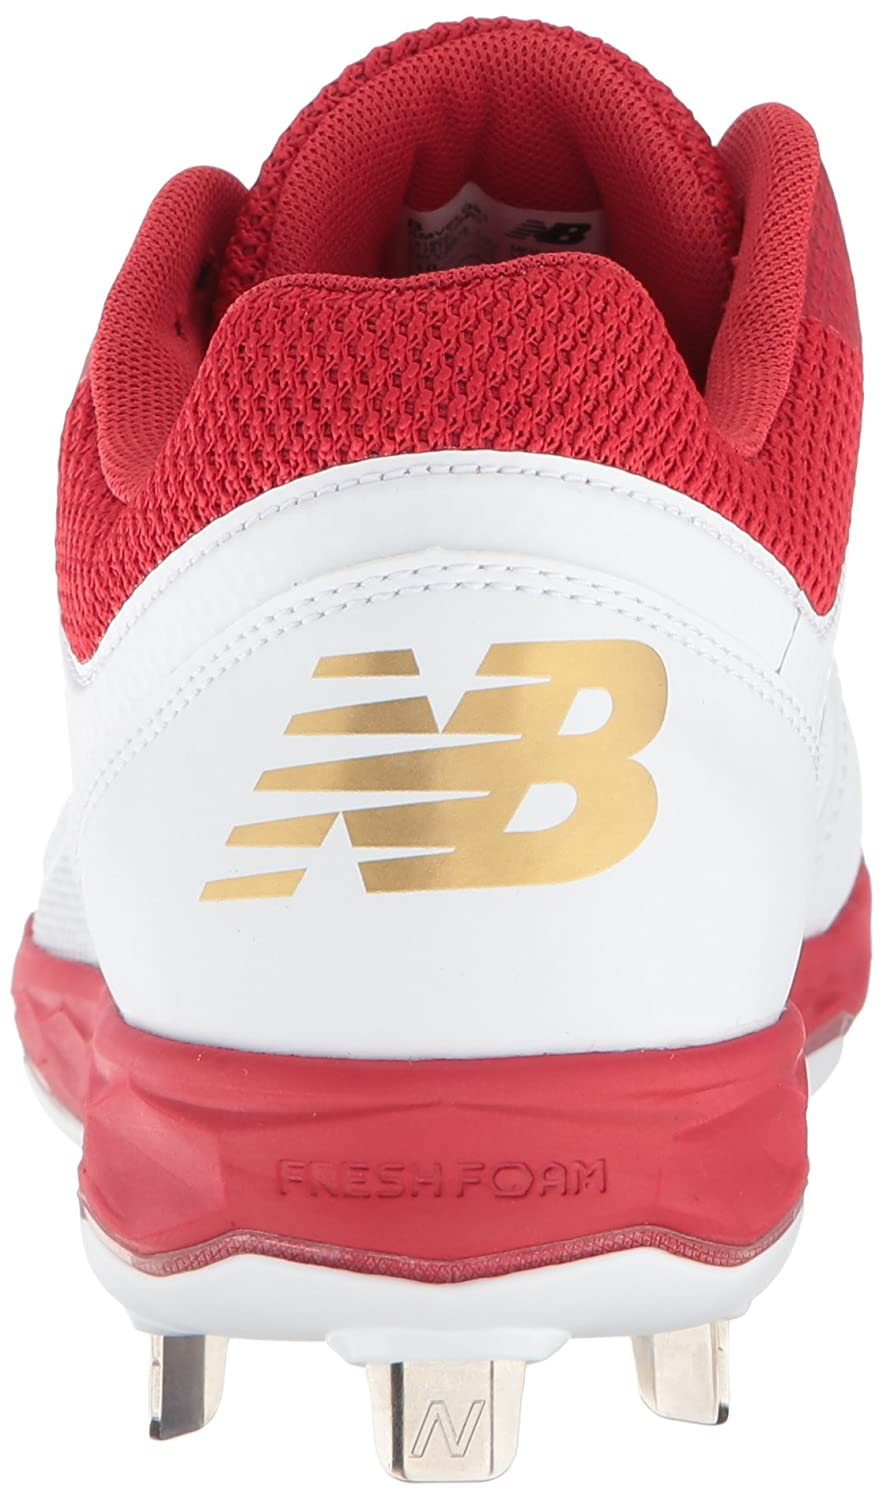 New Balance B075R3R9PF Women's Velo V1 Metal Softball Shoe B075R3R9PF Balance 13 D US|Red/White efda6b